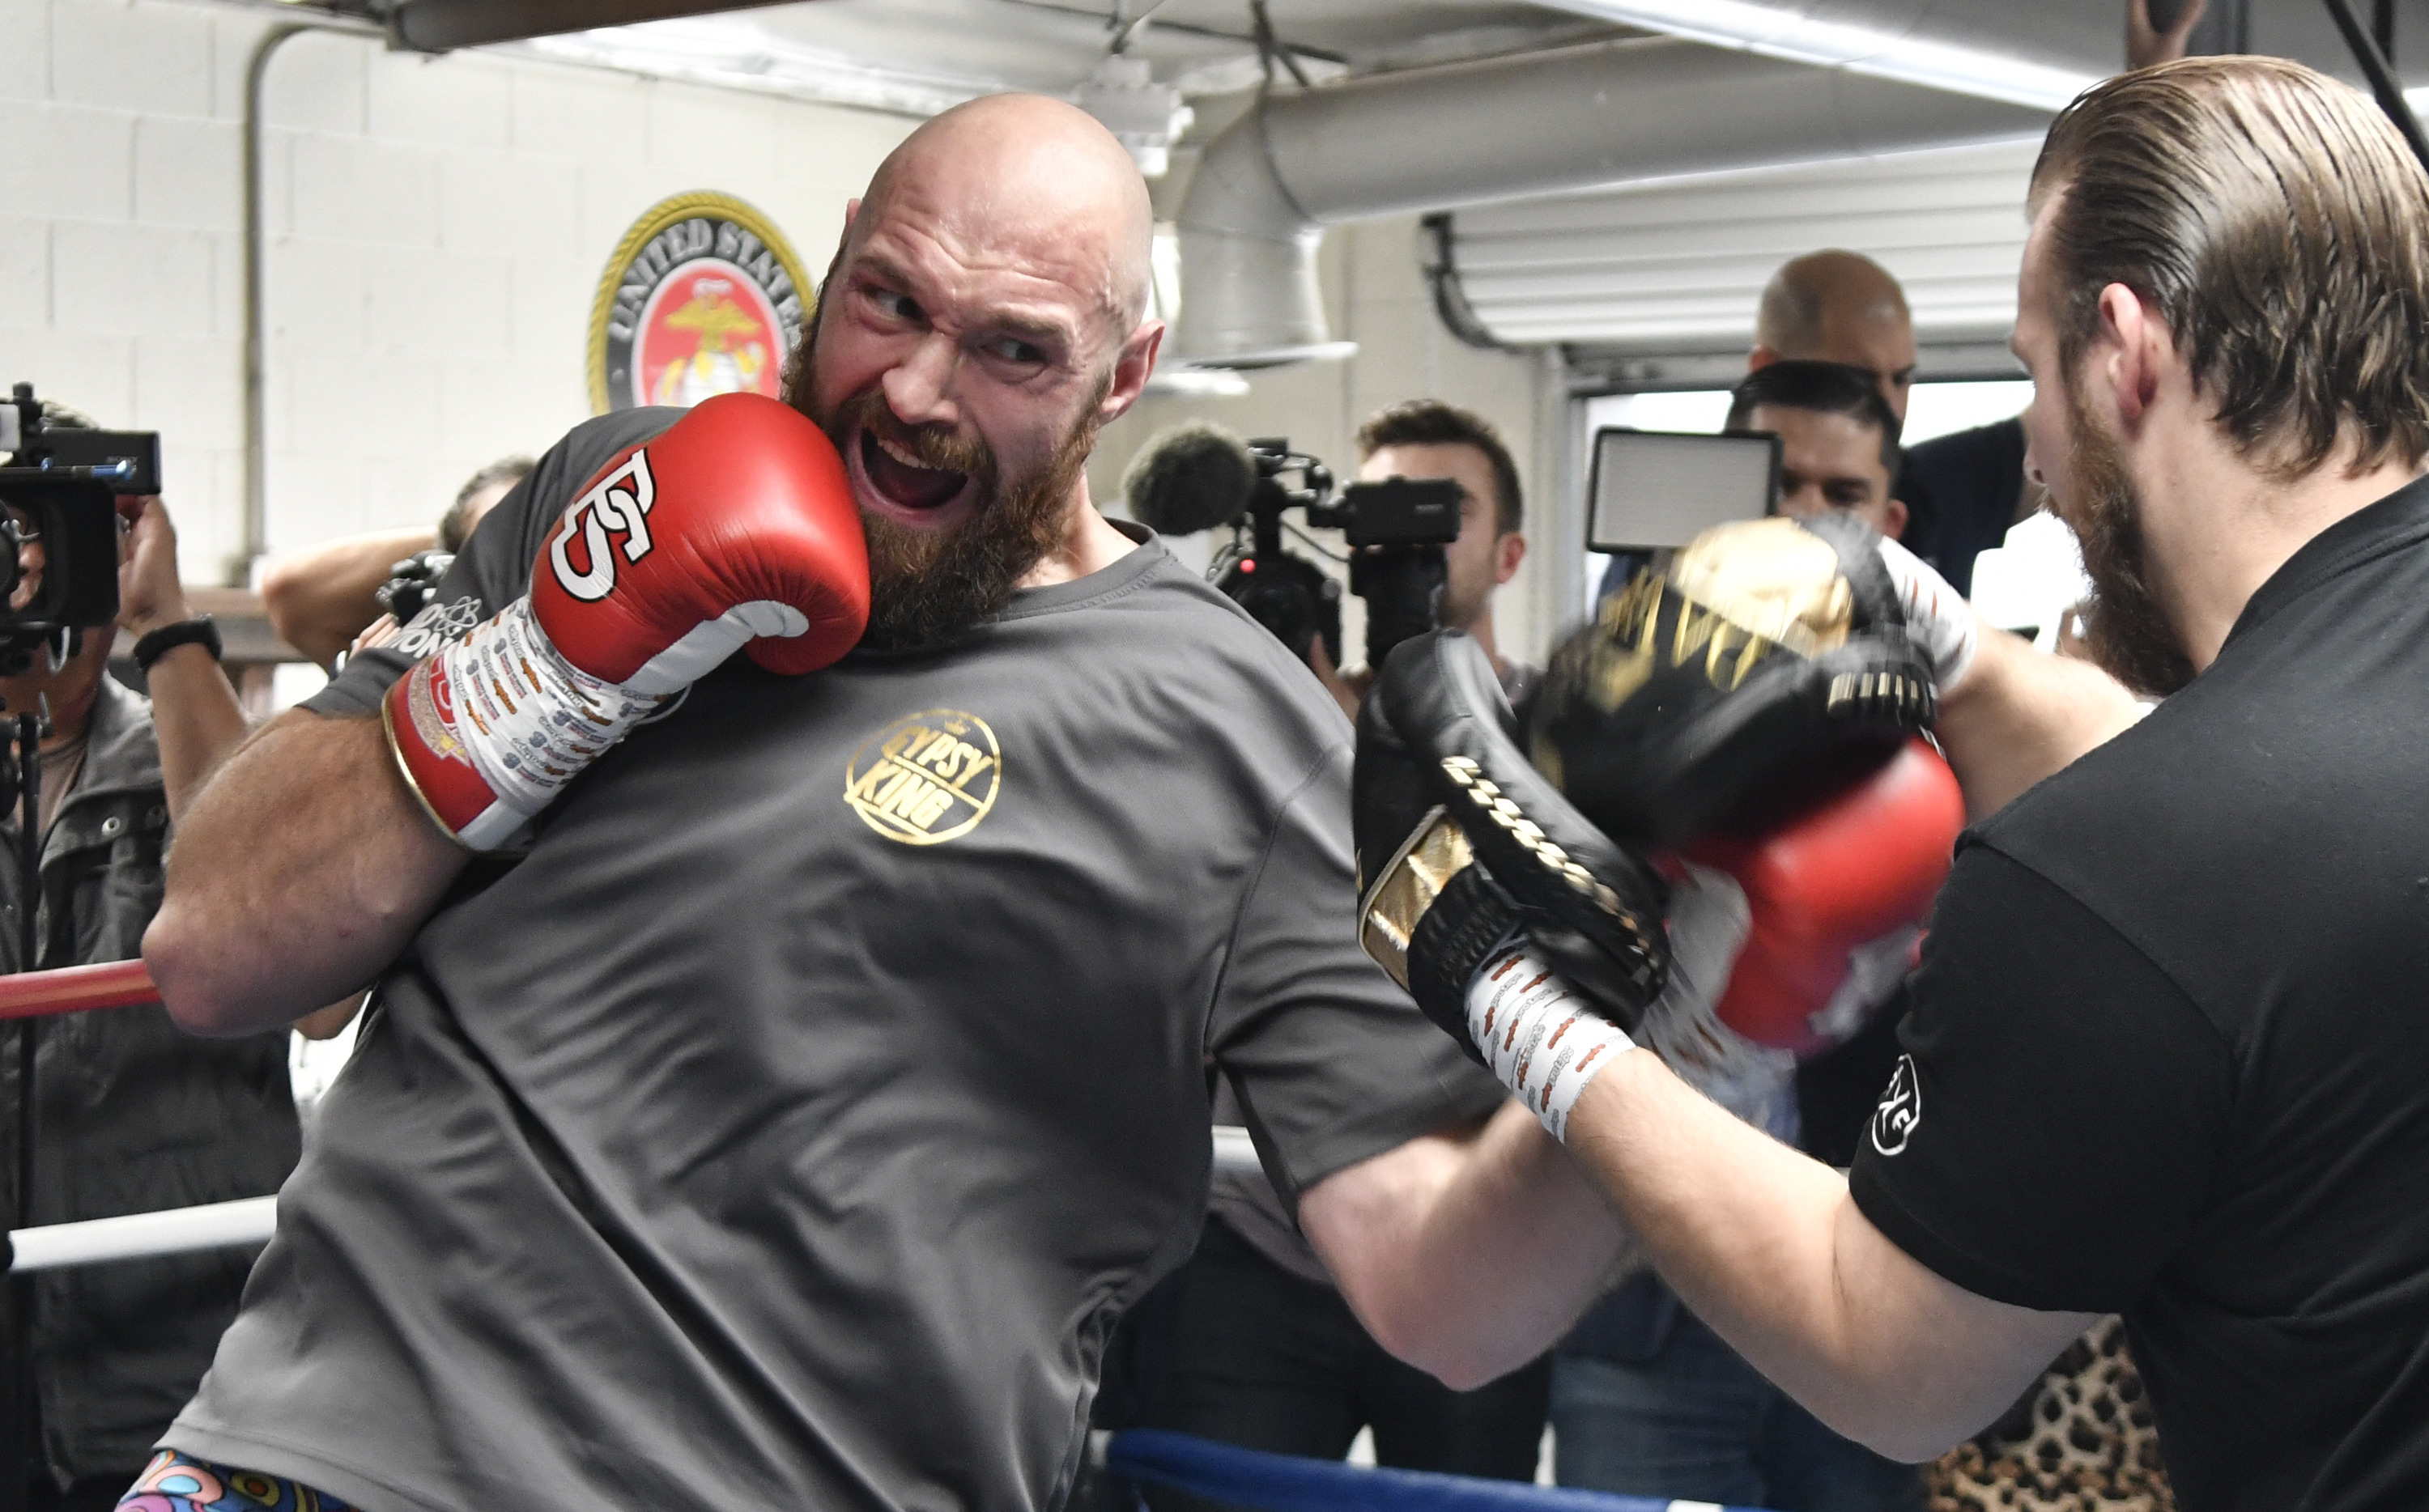 Tyson Fury will take on Deontay Wilder for the WBC heavyweight belt on December 1st in Los Angeles. Credit: PA